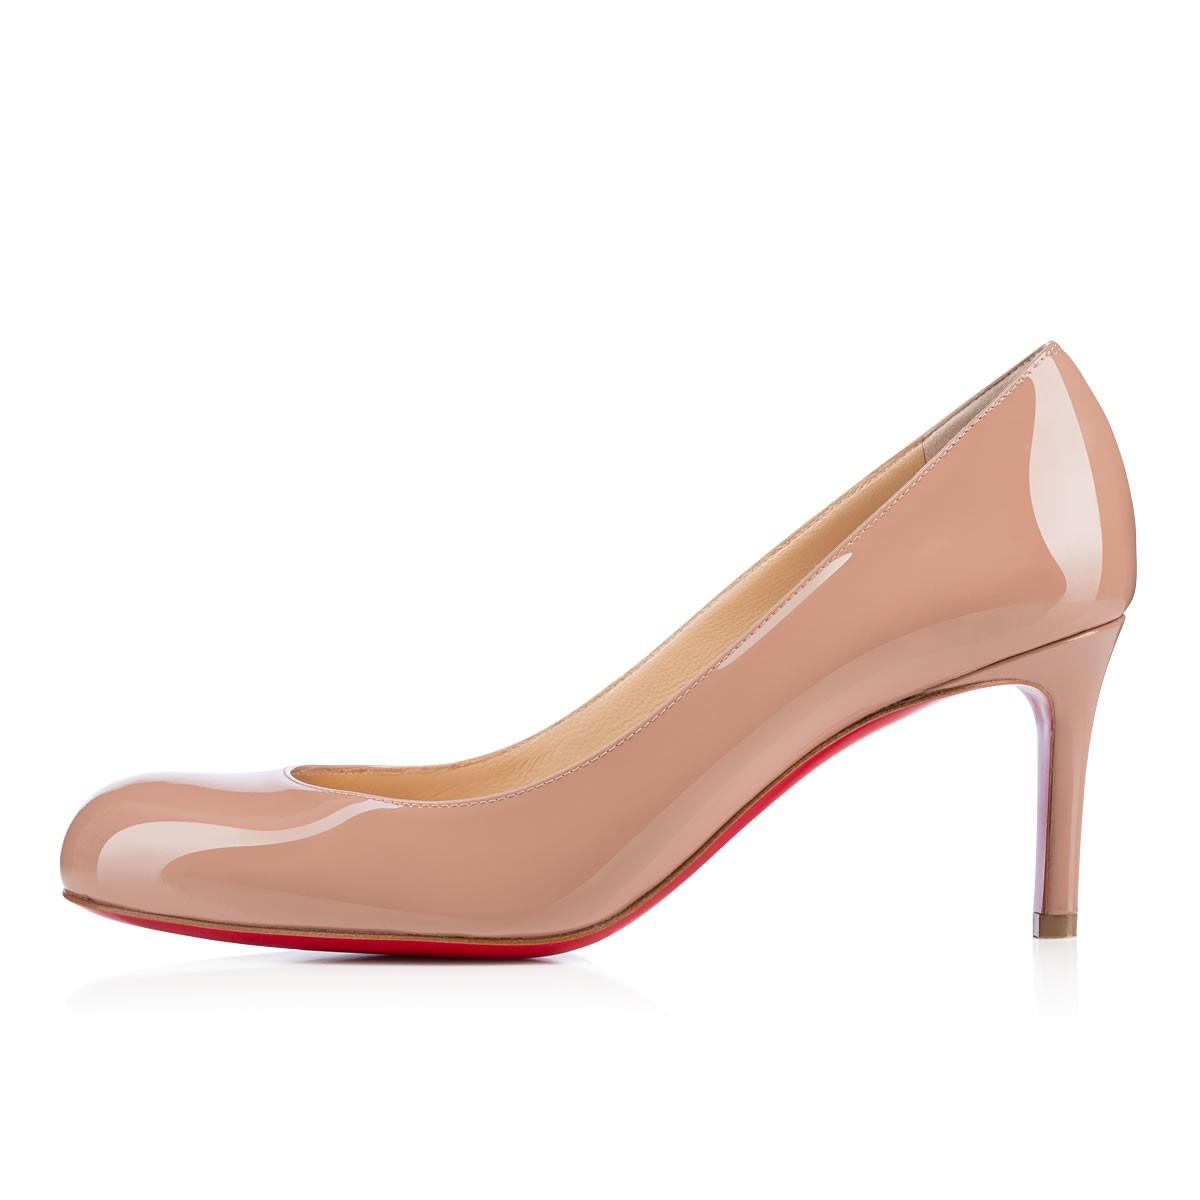 best service 93c41 09f71 Simple Patent Red Sole Pump, Nude